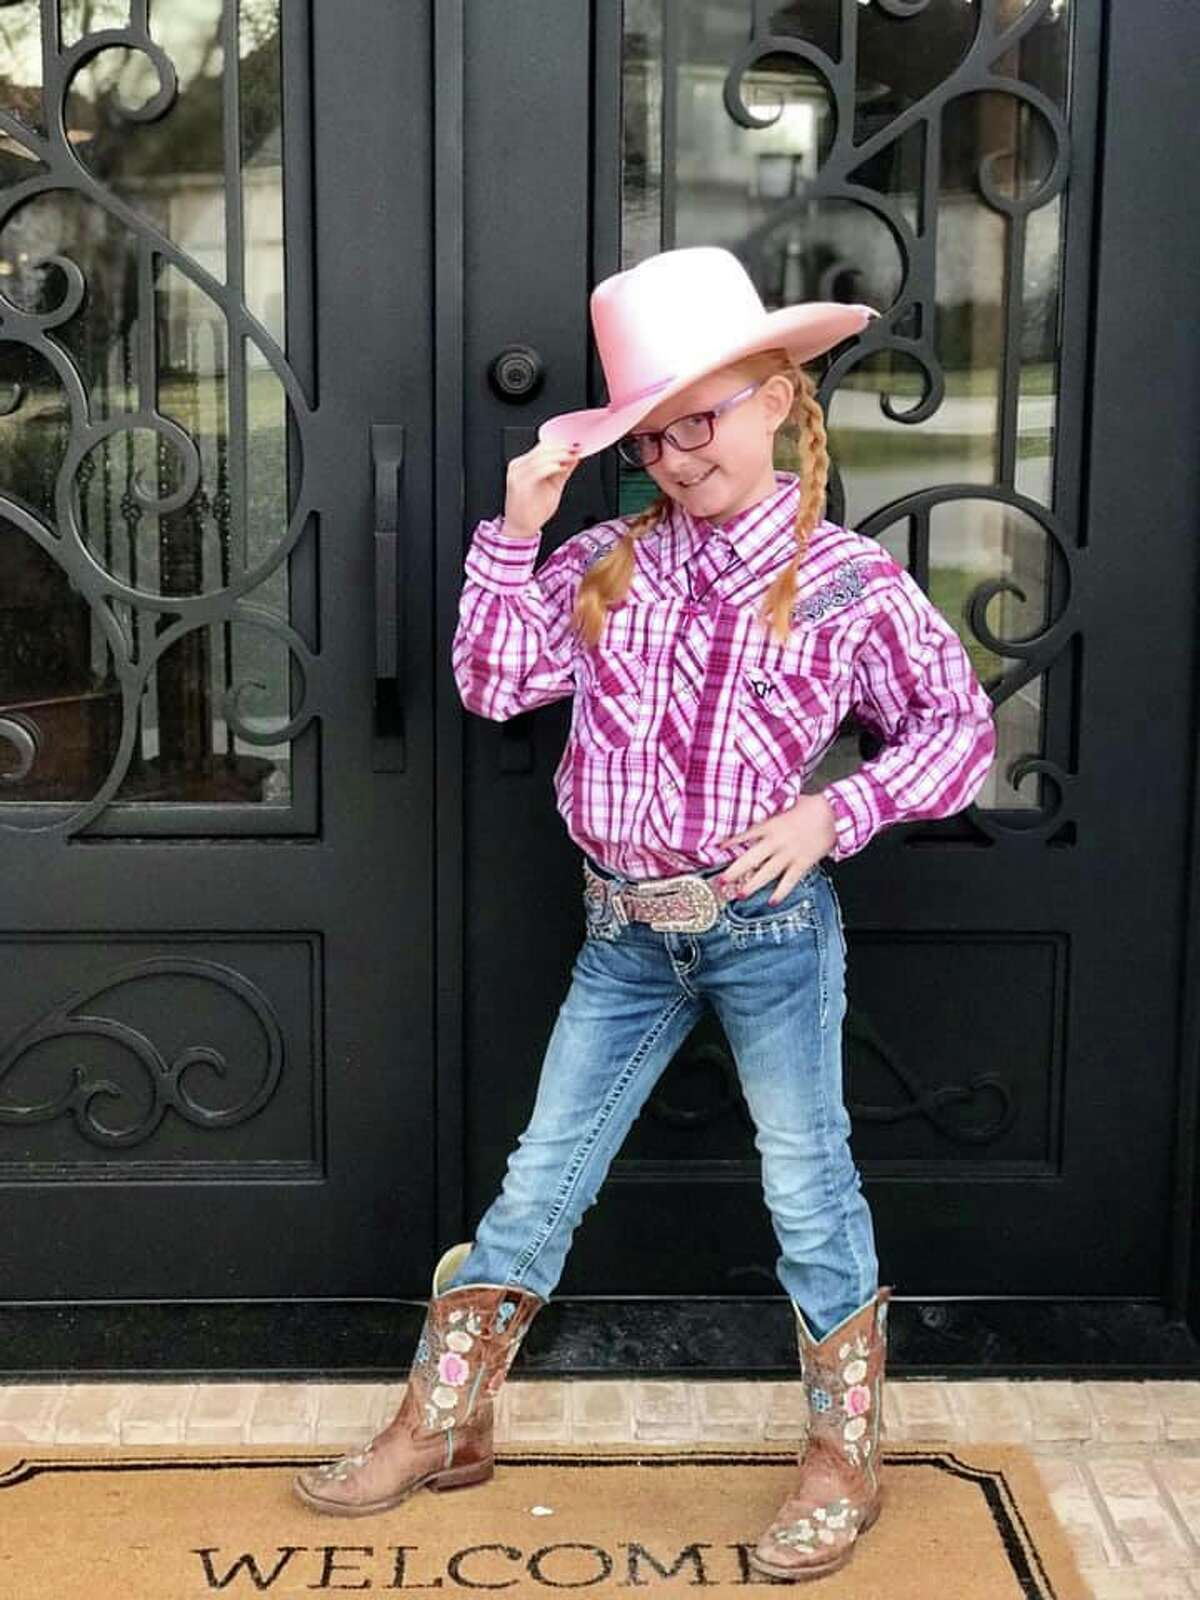 Houston's youngest rodeo fans got in the spirit for Go Texan Day and showcased their rodeo best for the occasion.